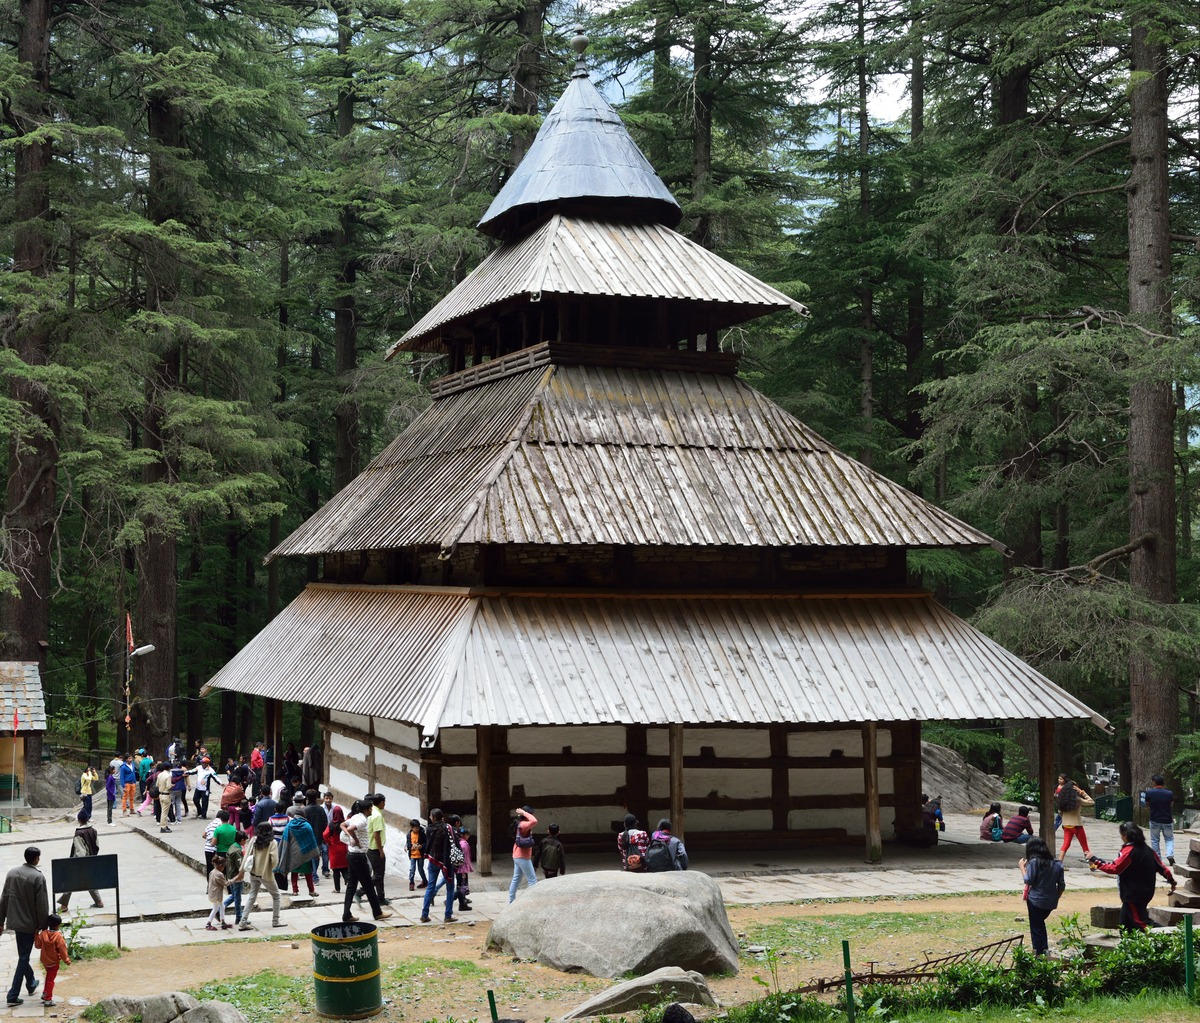 hadimba temple in manali - place to visit for summer vacations in india with family